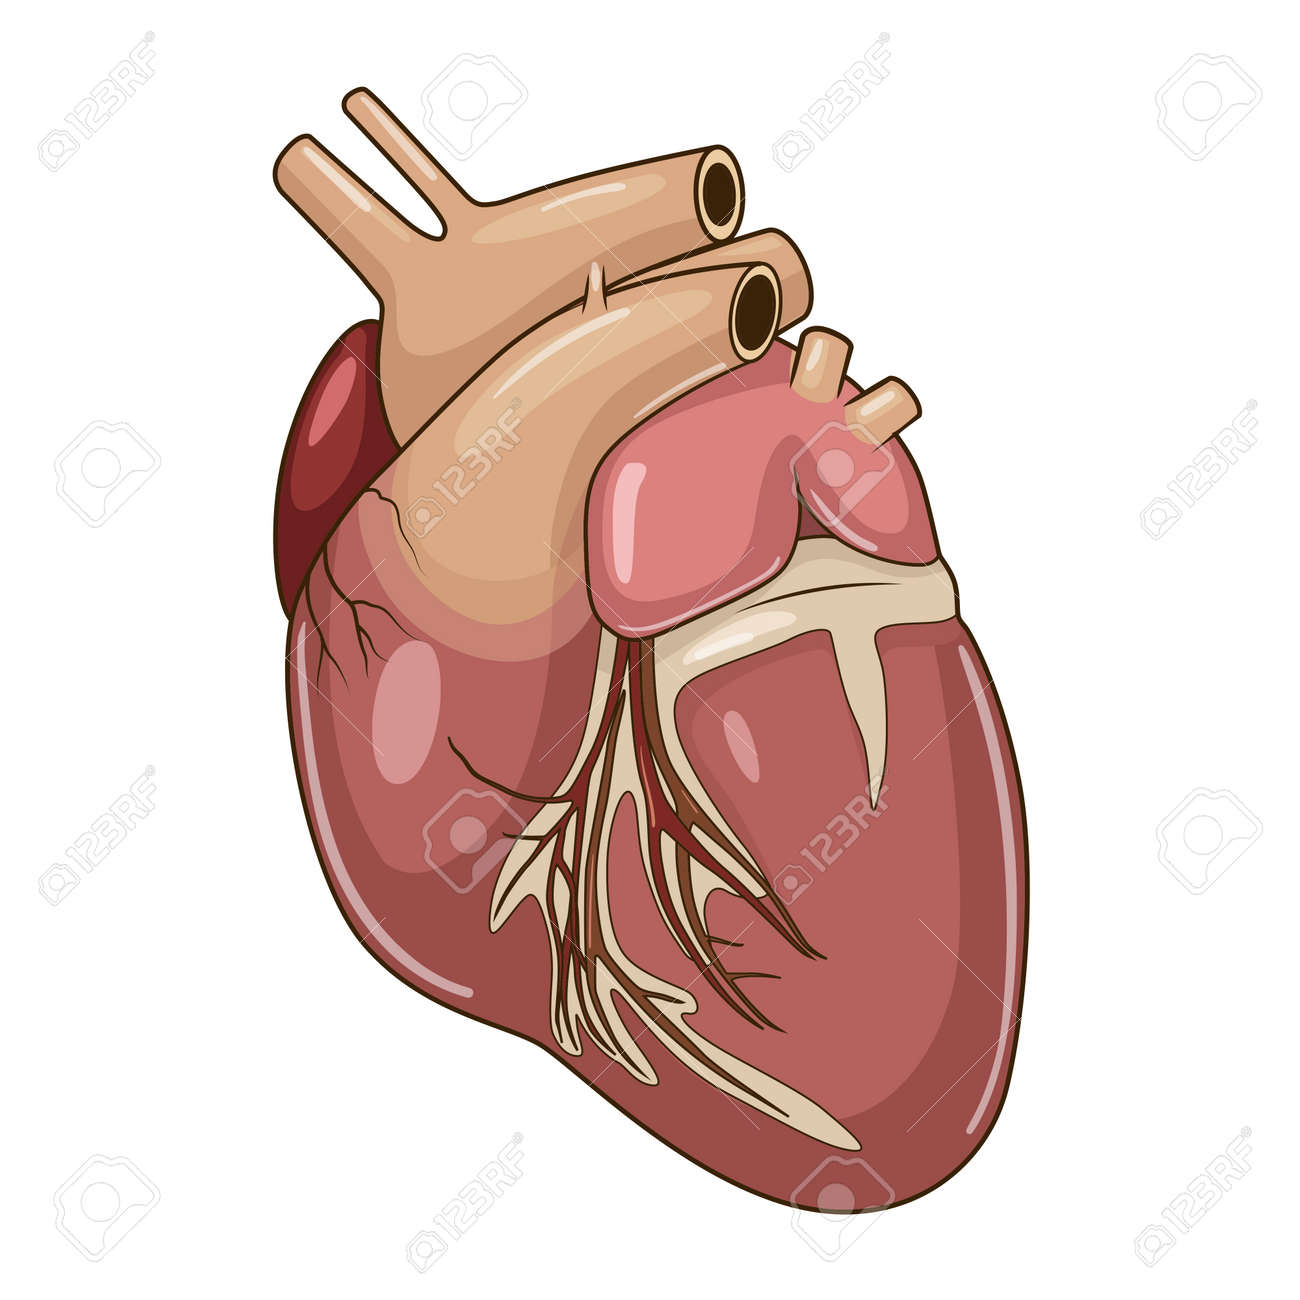 Heart Of A Dog Medical Veterinary Science Educational Vector ...